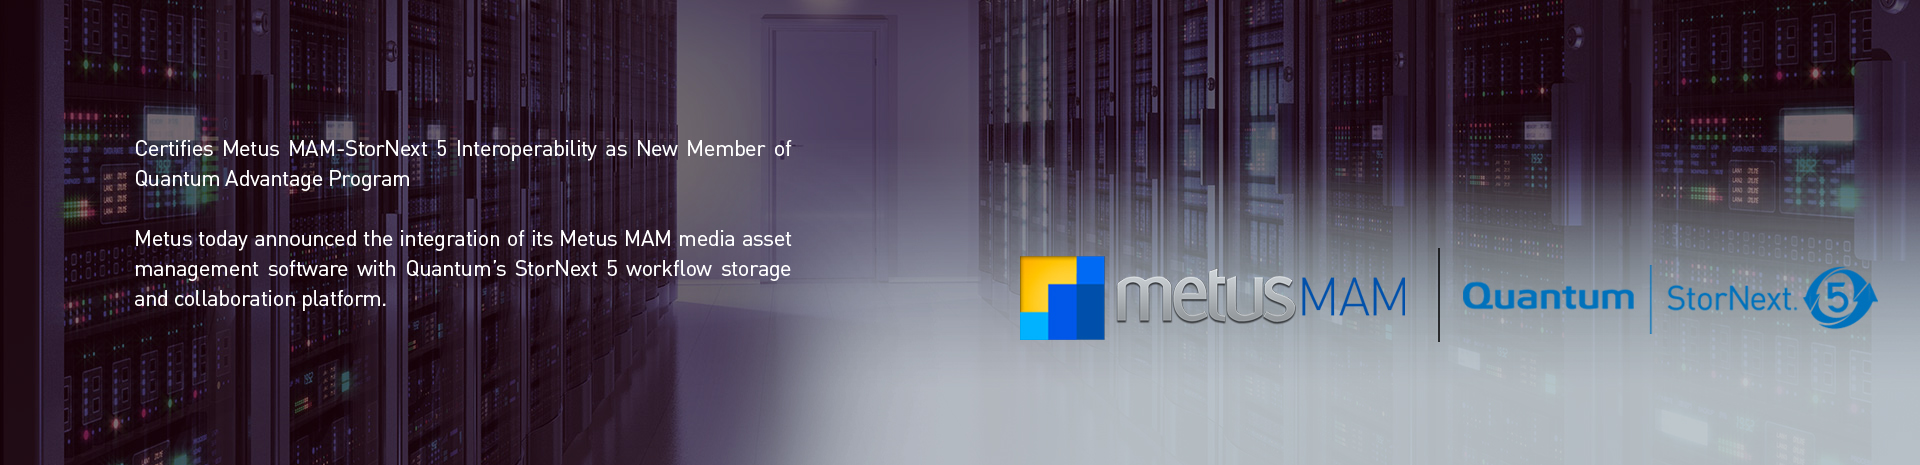 Metus Extends its Archive Support with Quantum's  StorNext 5 Platform